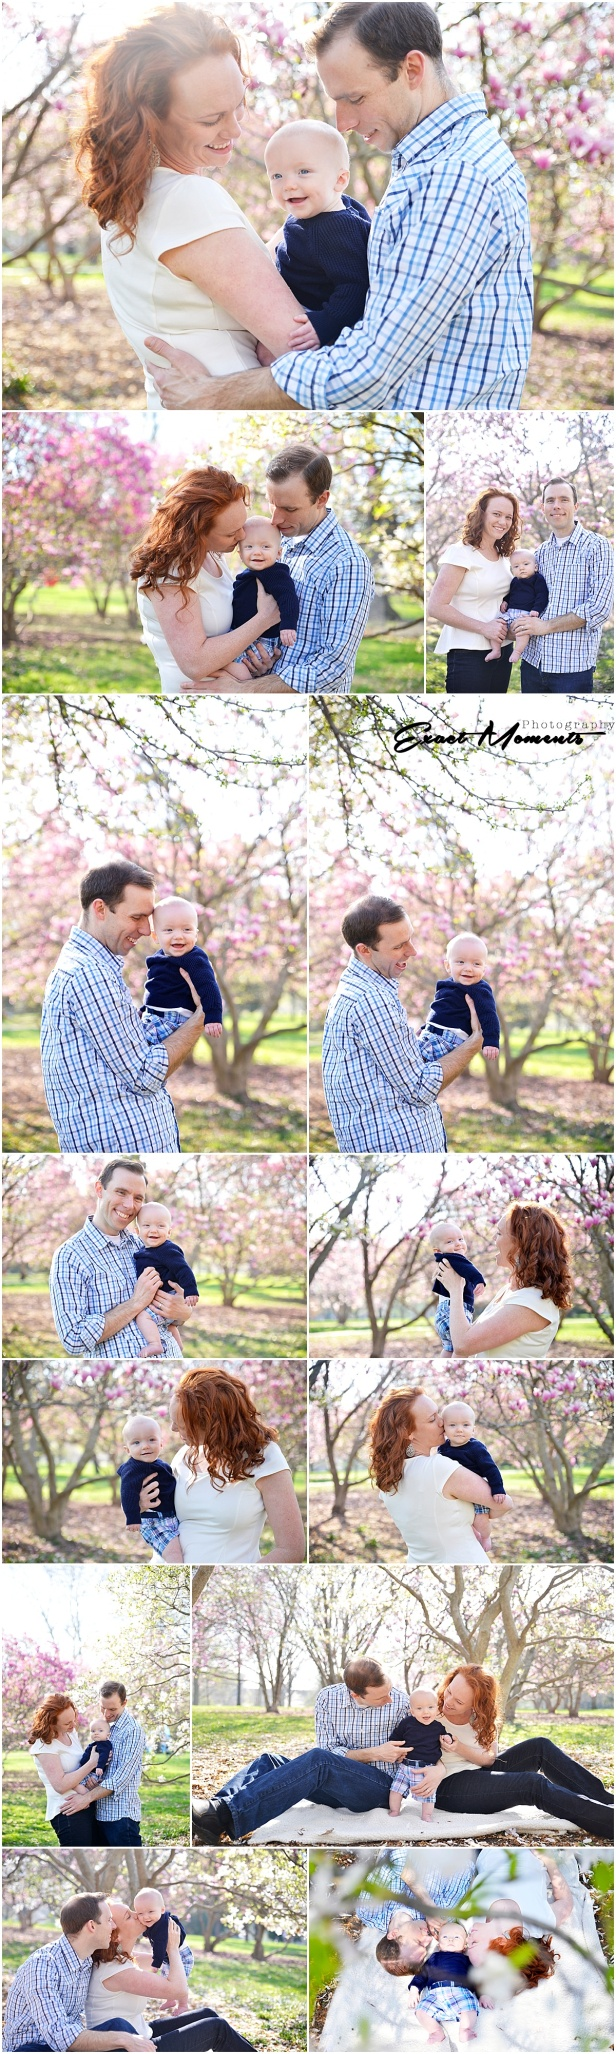 spring-mini-photo-sessions-columbus-ohio